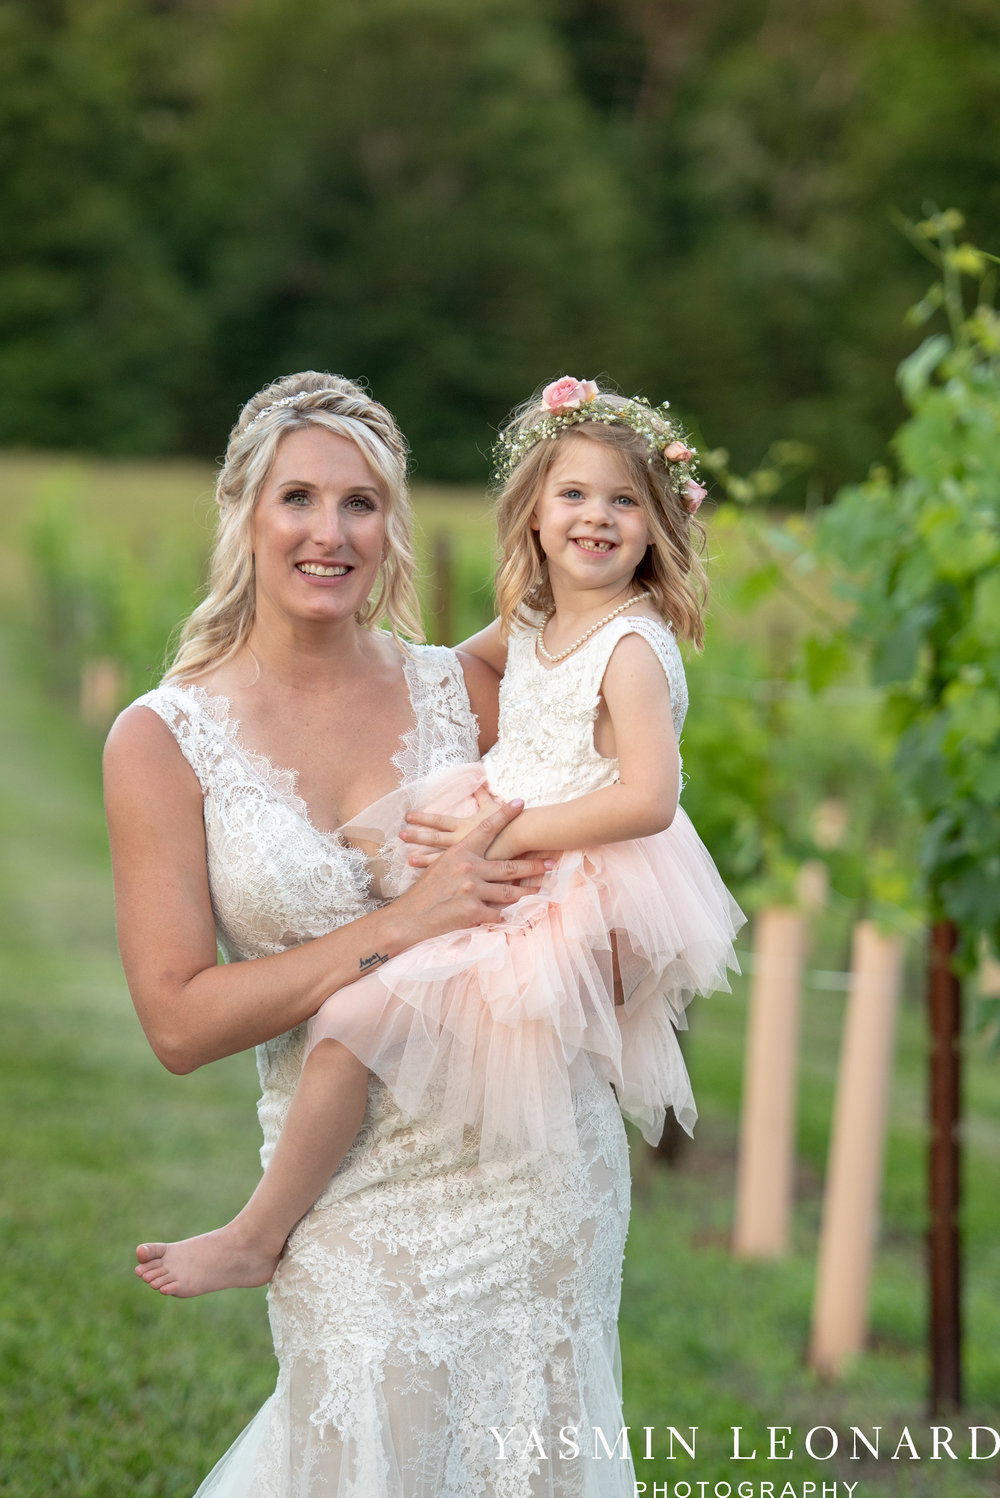 Elkin Creek Vineyard - Elkin Creek Weddings - NC Wine - NC Wineries - NC Weddings - NC Photographers - NC Wedding Photographer - NC Winery Wedding Ideas - Yasmin Leonard Photography - High Point Wedding Photographer-86.jpg